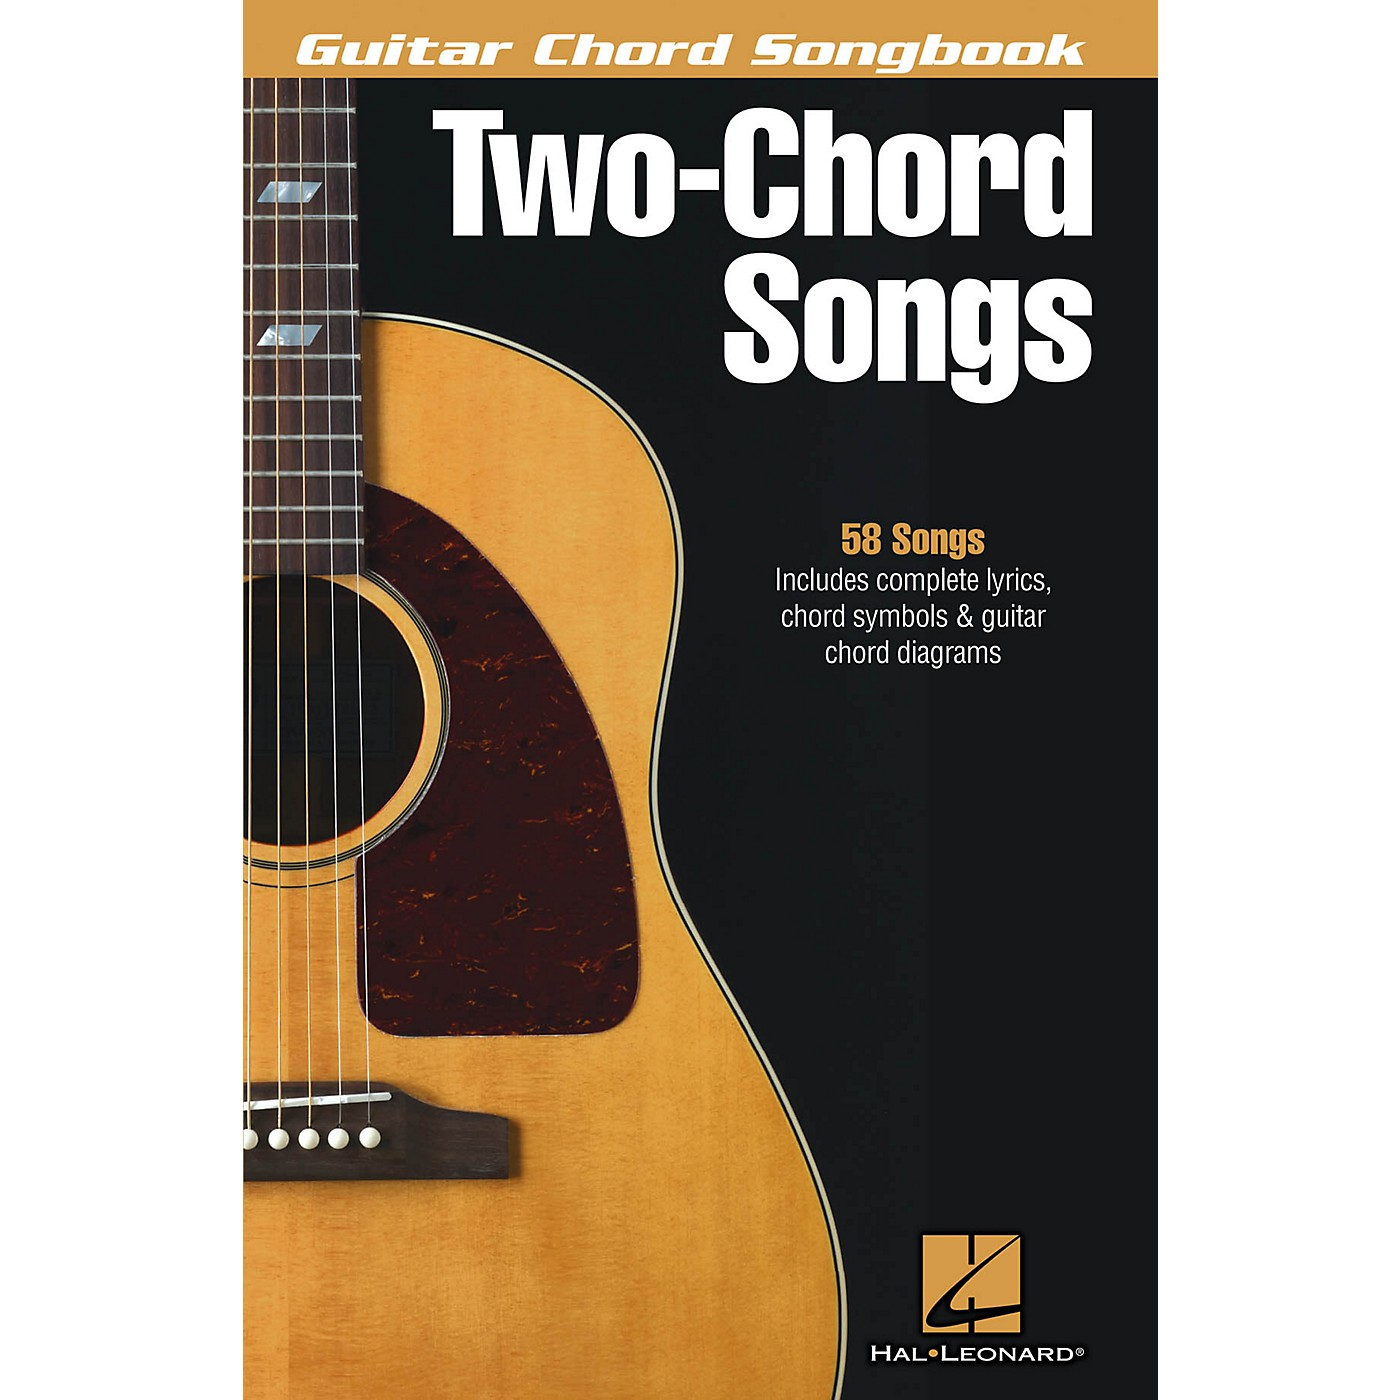 Hal Leonard Two-Chord Songs - Guitar Chord Songbook Guitar Chord Songbook Series Softcover Performed by Various thumbnail